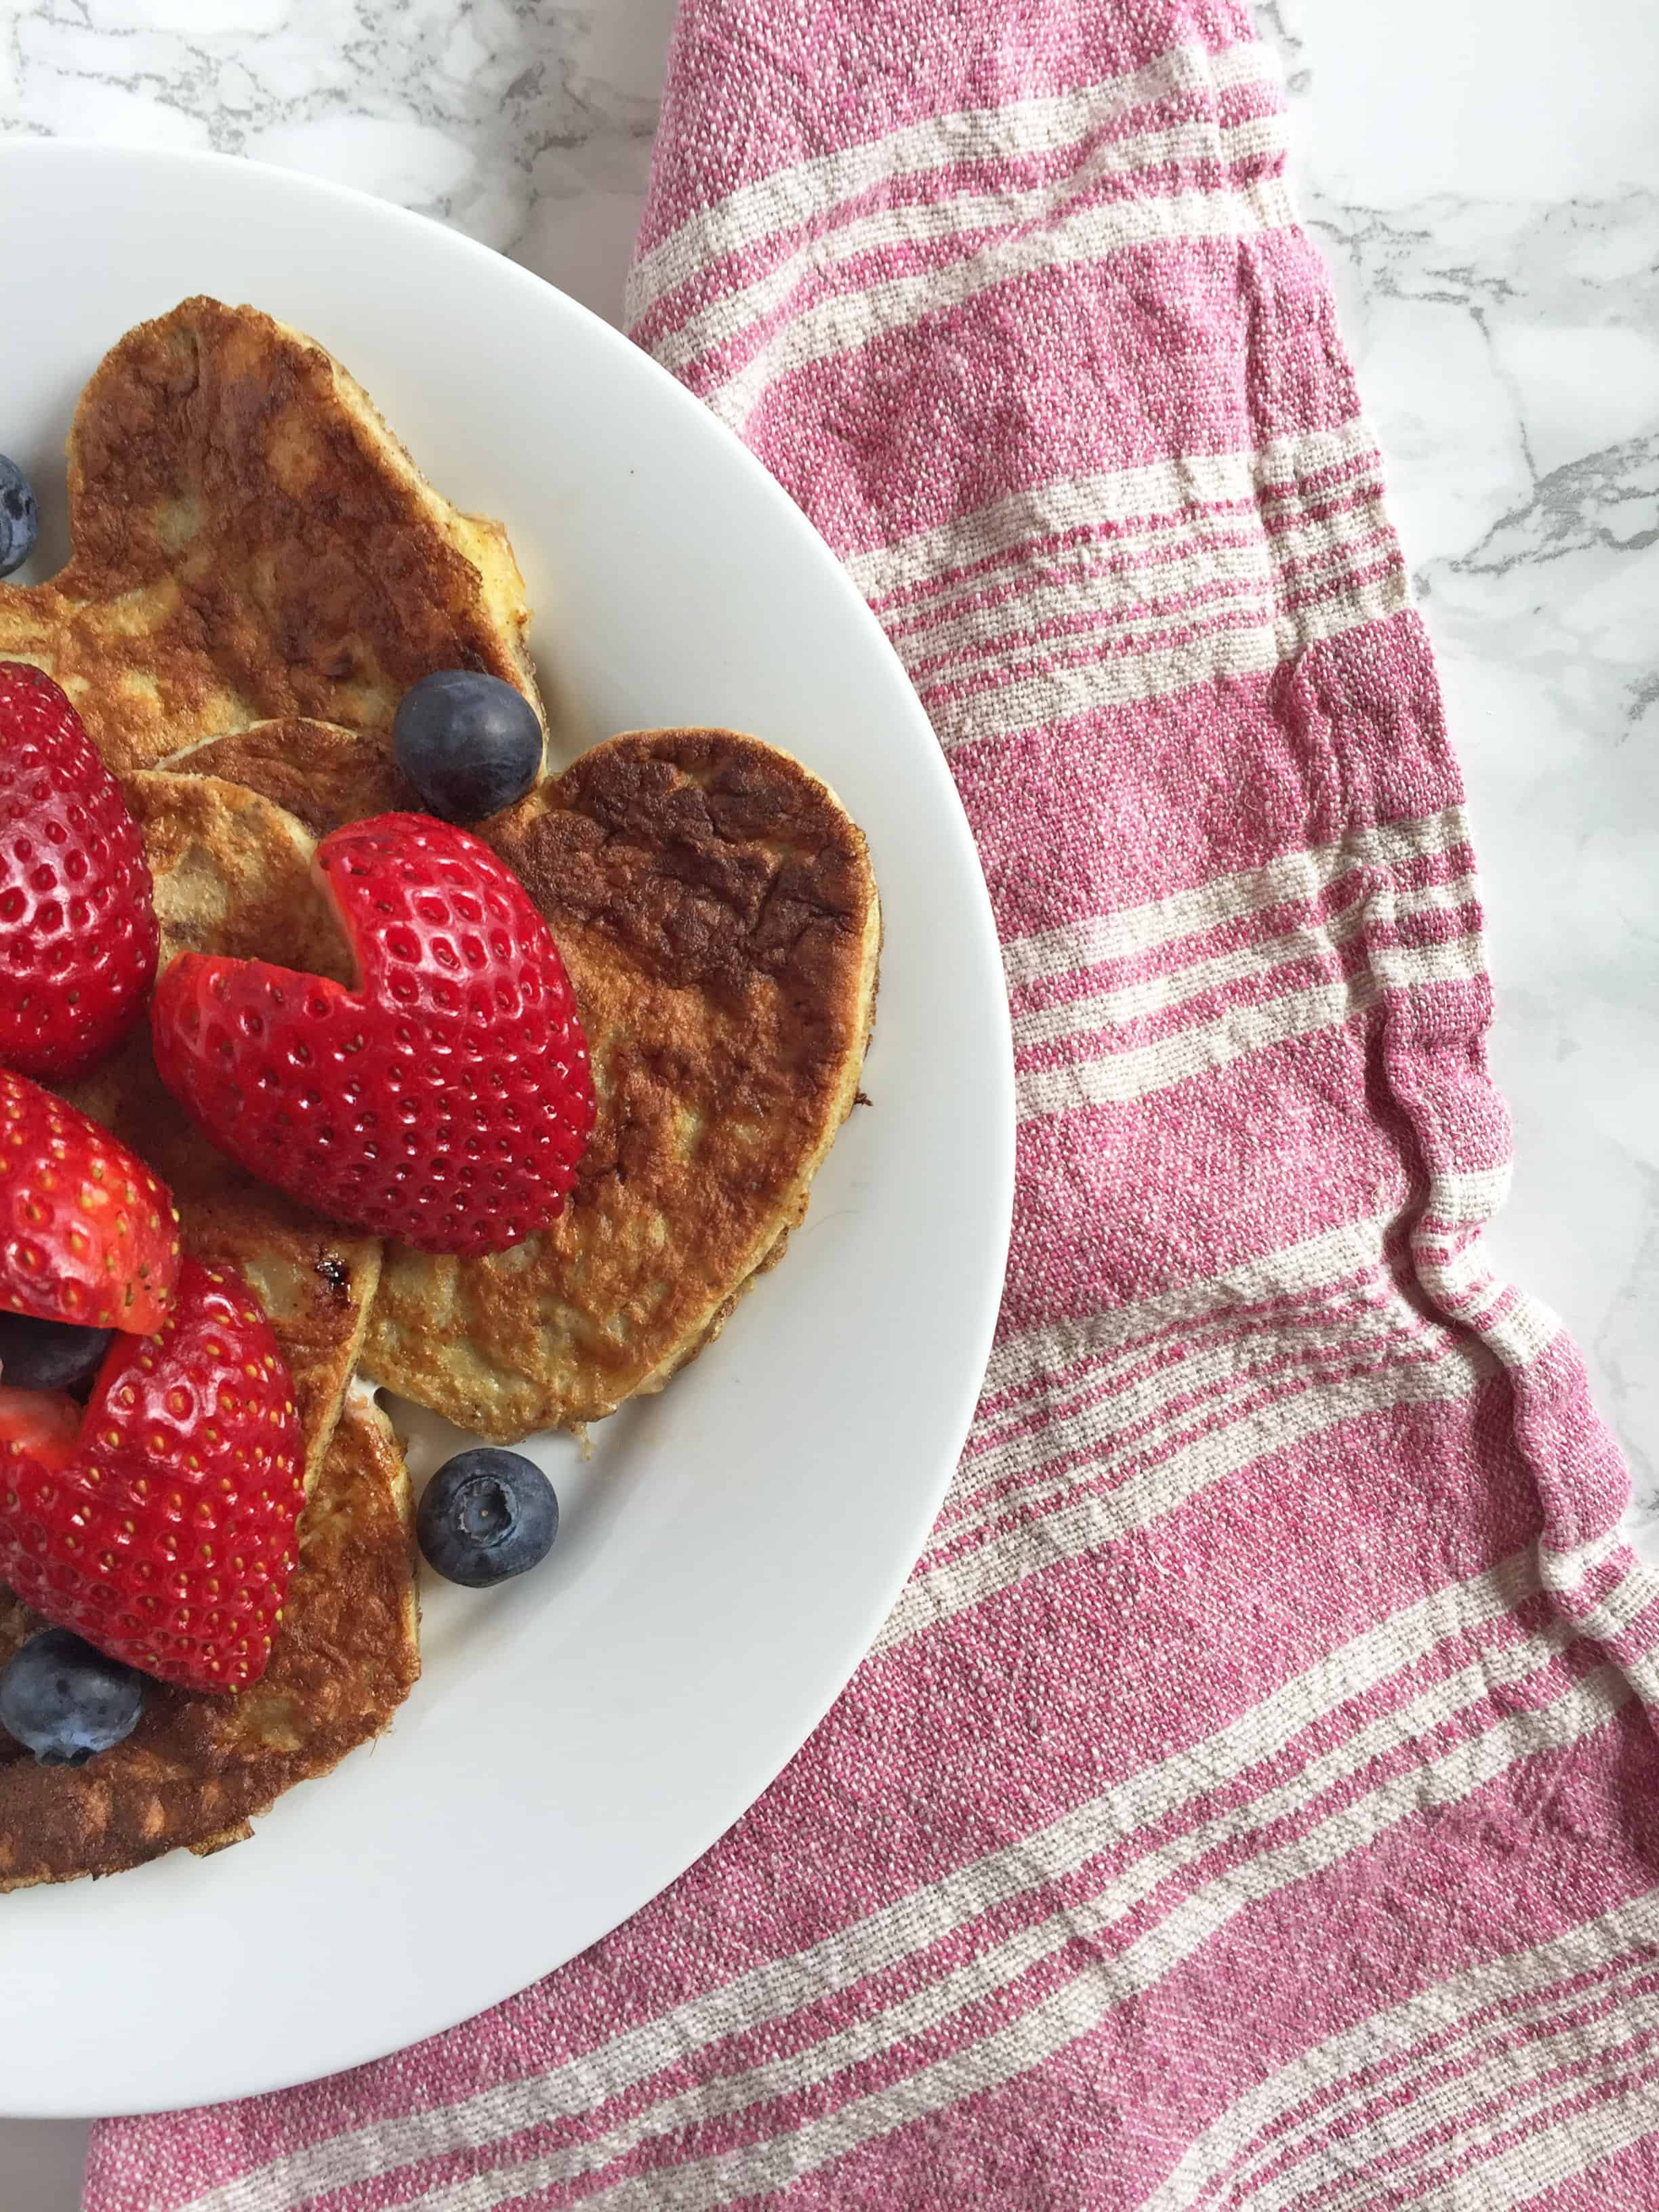 3 ingredient heart pancakes with strawberries and blueberries.